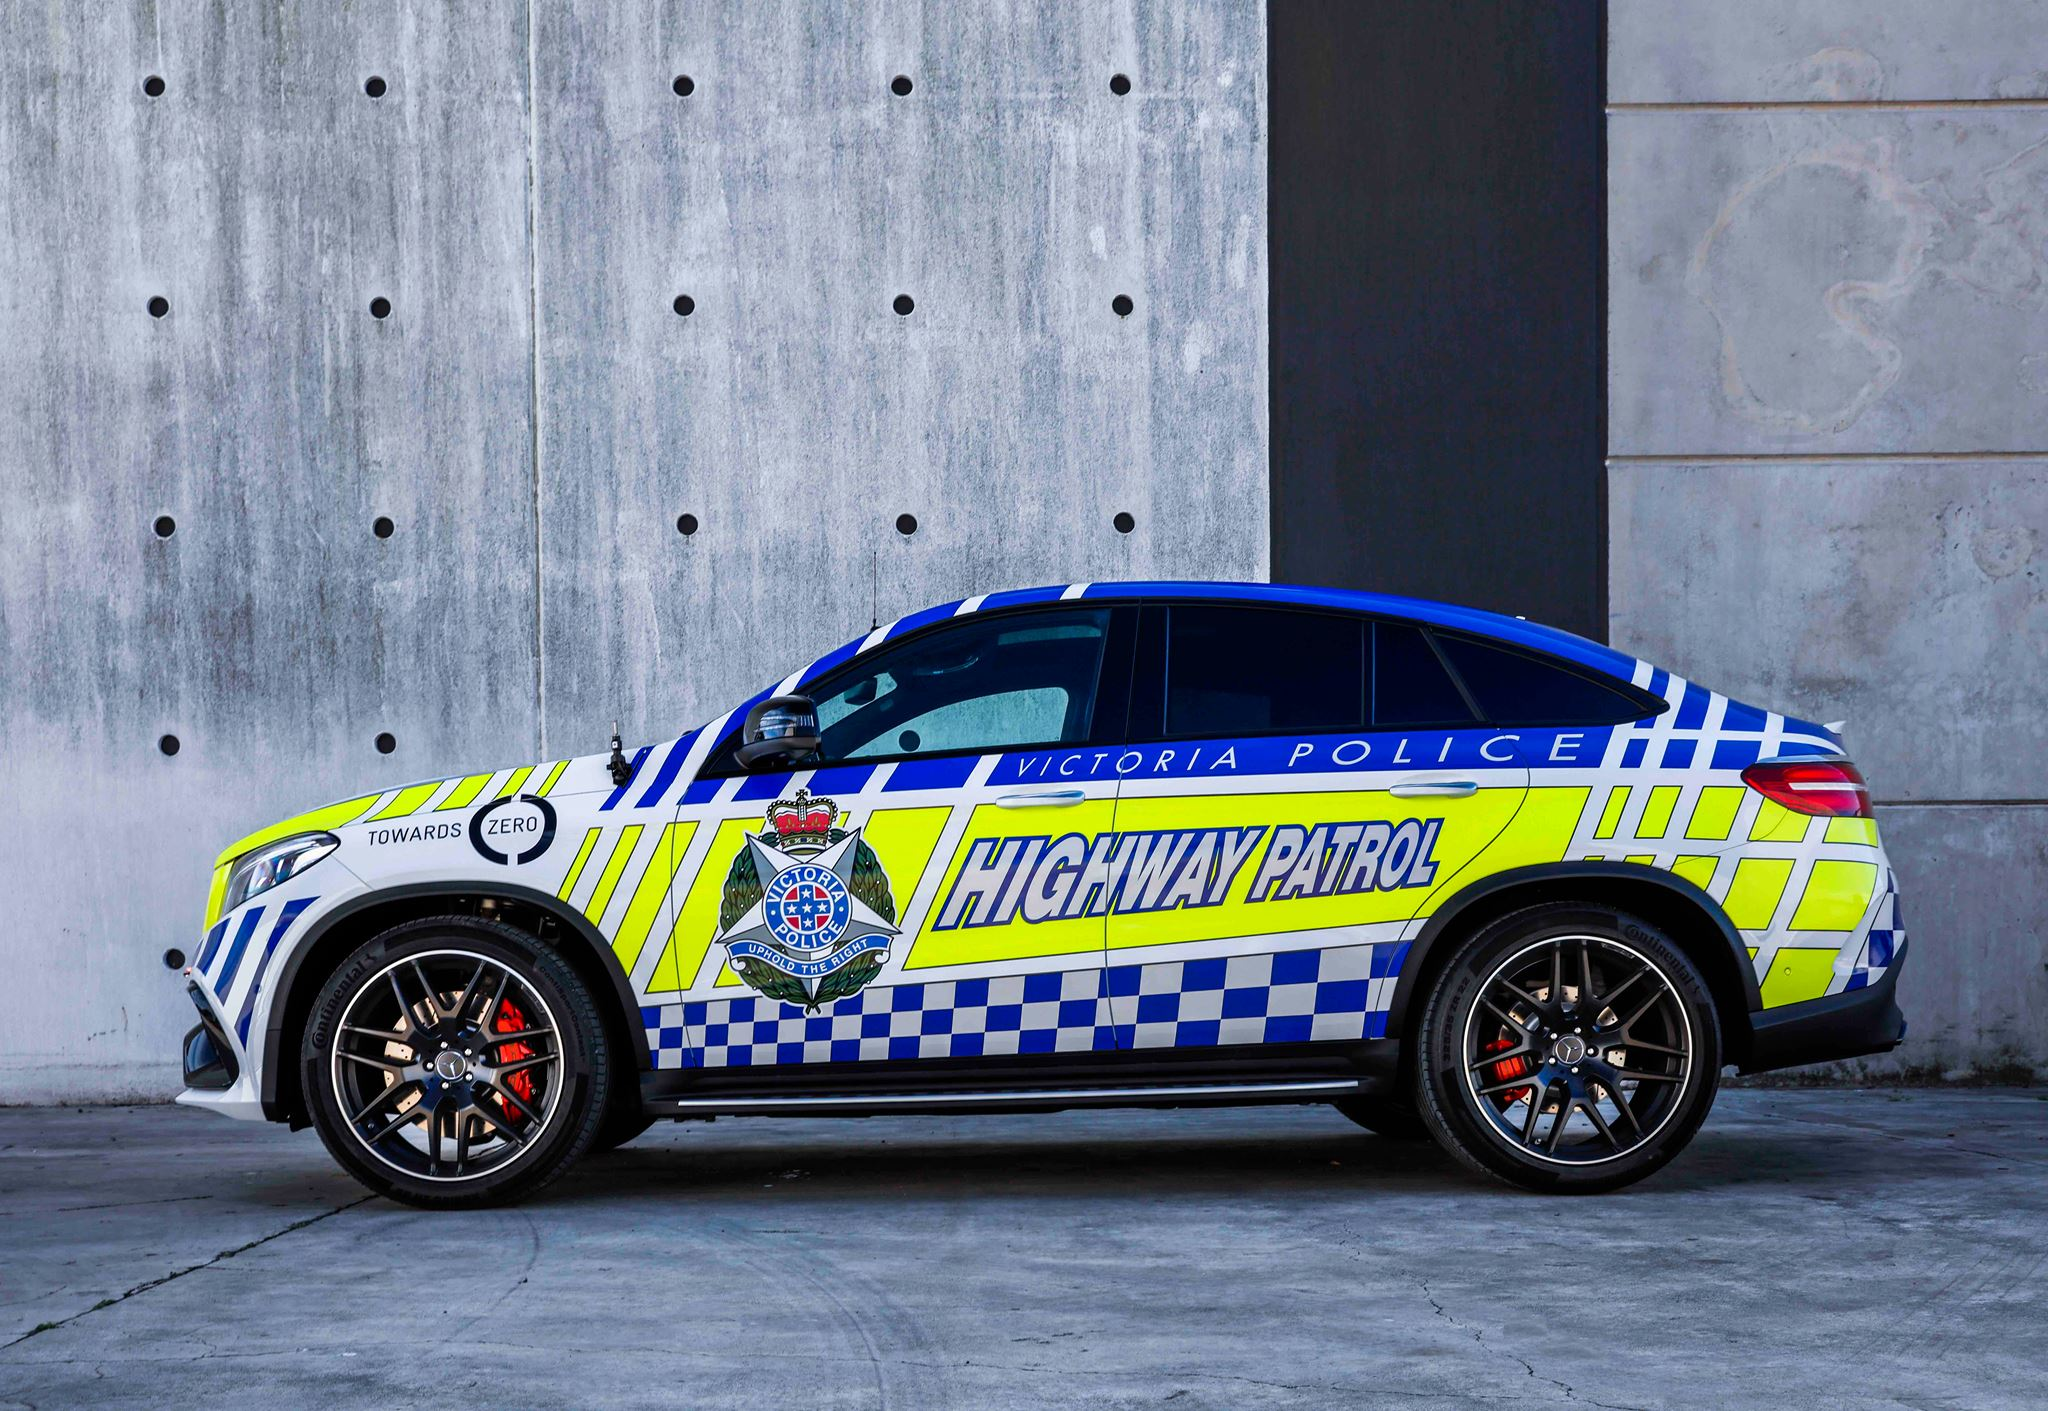 Mercedes-Benz Australia joins forces with Victoria Police & Portfolio - Car Vinyl Wraps Custom Wrapping Signage Costs Exotic ...